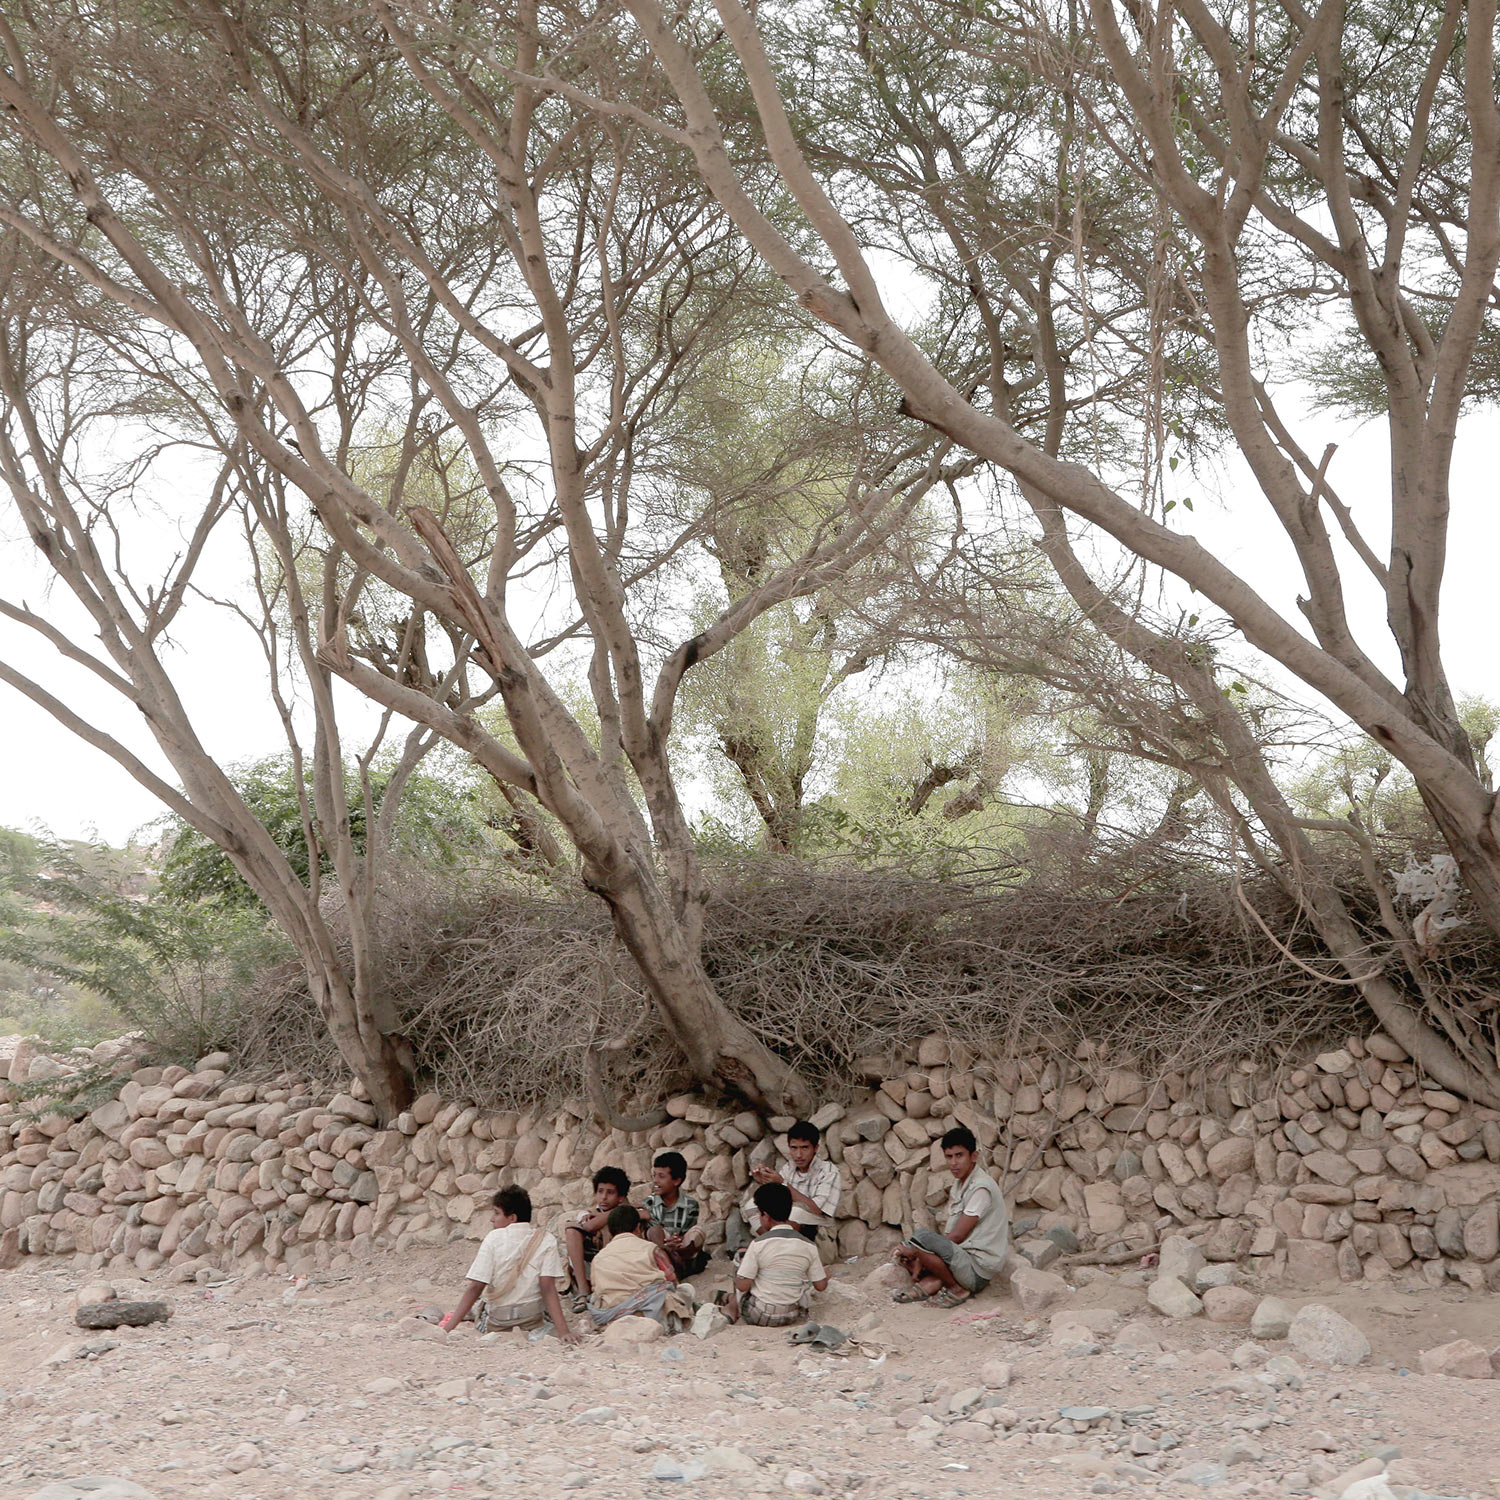 In this July 24, 2018 photo, men gather under trees in Shabwa, Yemen. (AP Photo/Nariman El-Mofty)